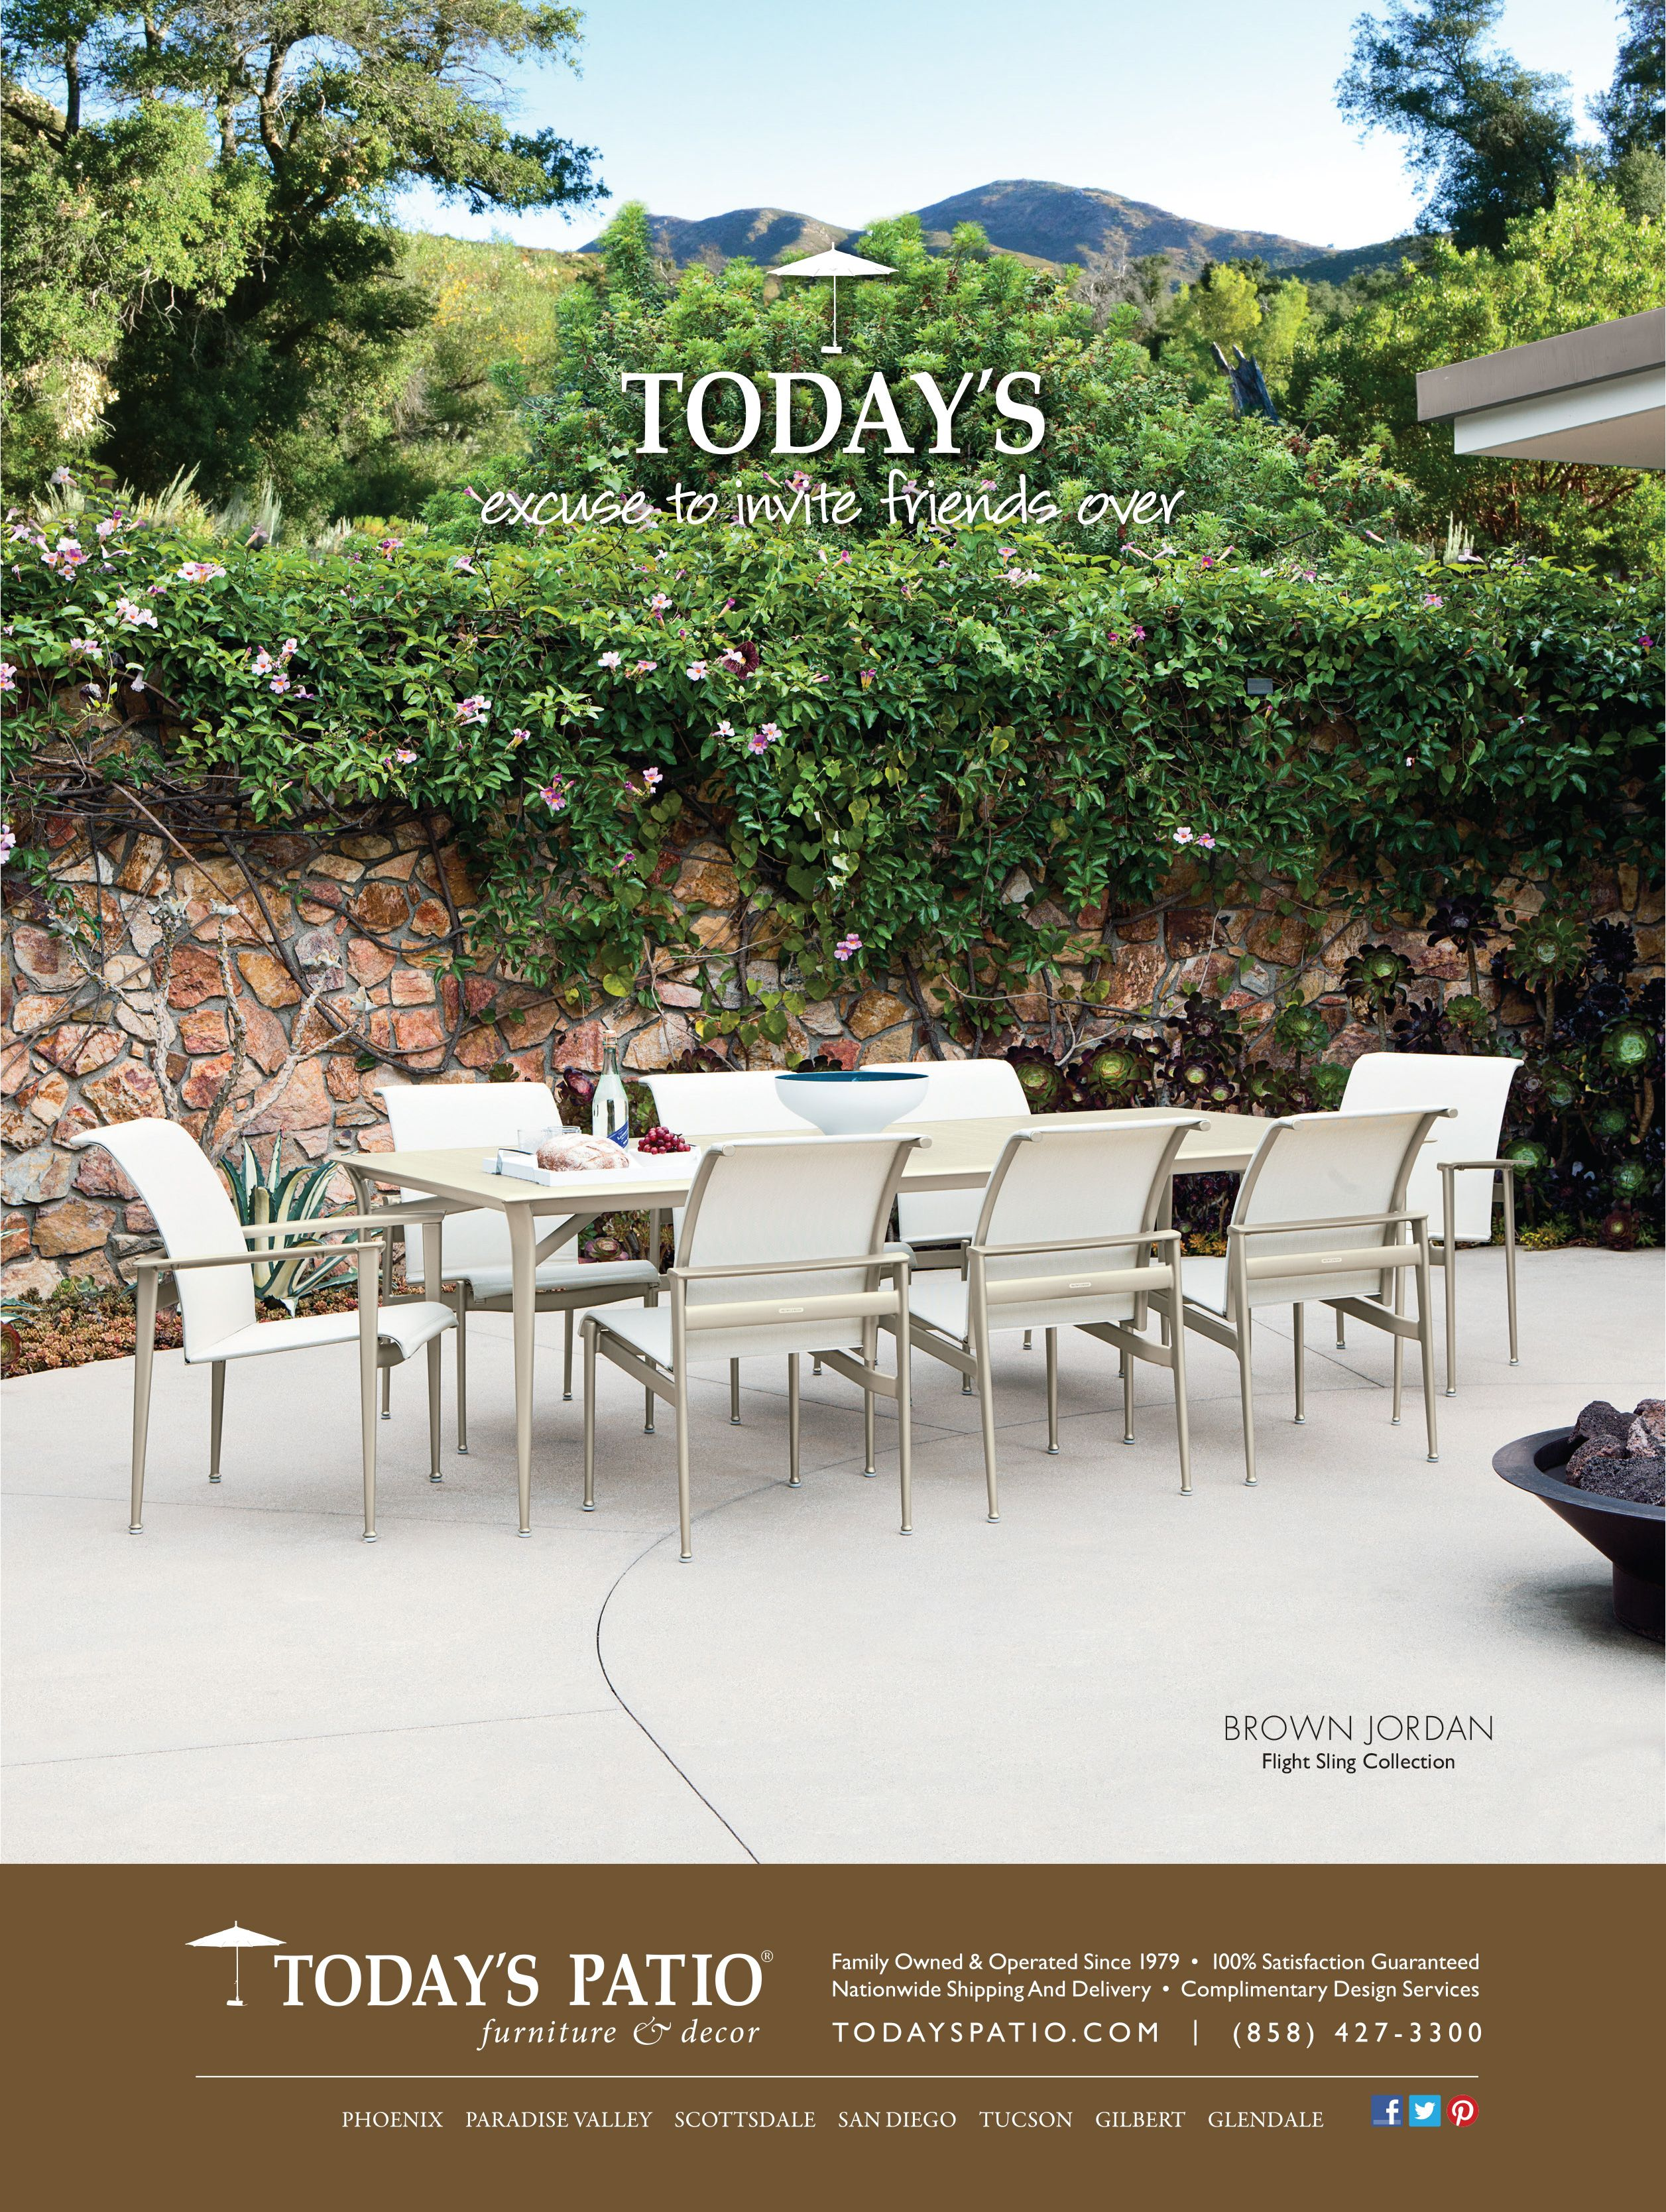 Brown Jordan Flight Collection Of Outdoor Furniture   Good Collection  (dining Sets And Chaise Lounges)